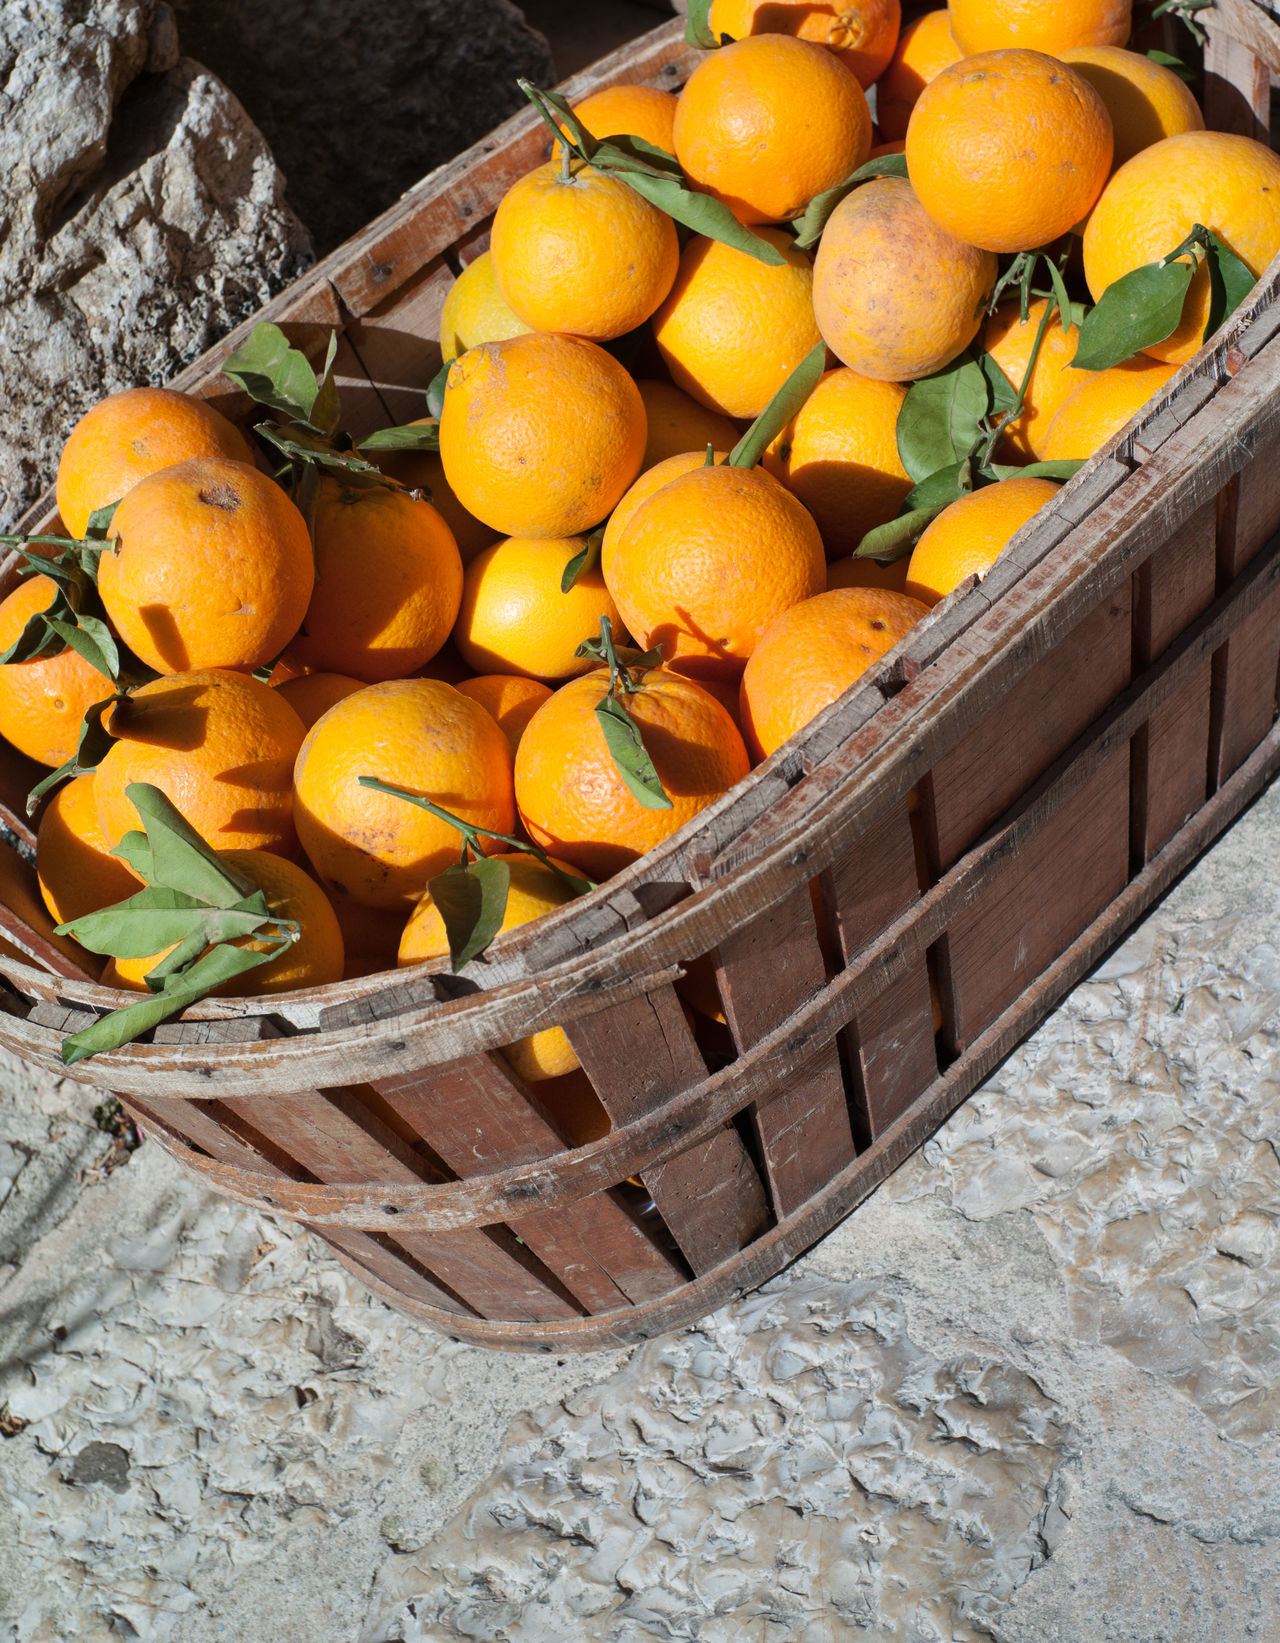 Basket full of ripe oranges Basket Citrus Fruit Food Freshness Fruit Healthy Eating Mediterranean  Orange - Fruit Orange Color Orange Season Oranges